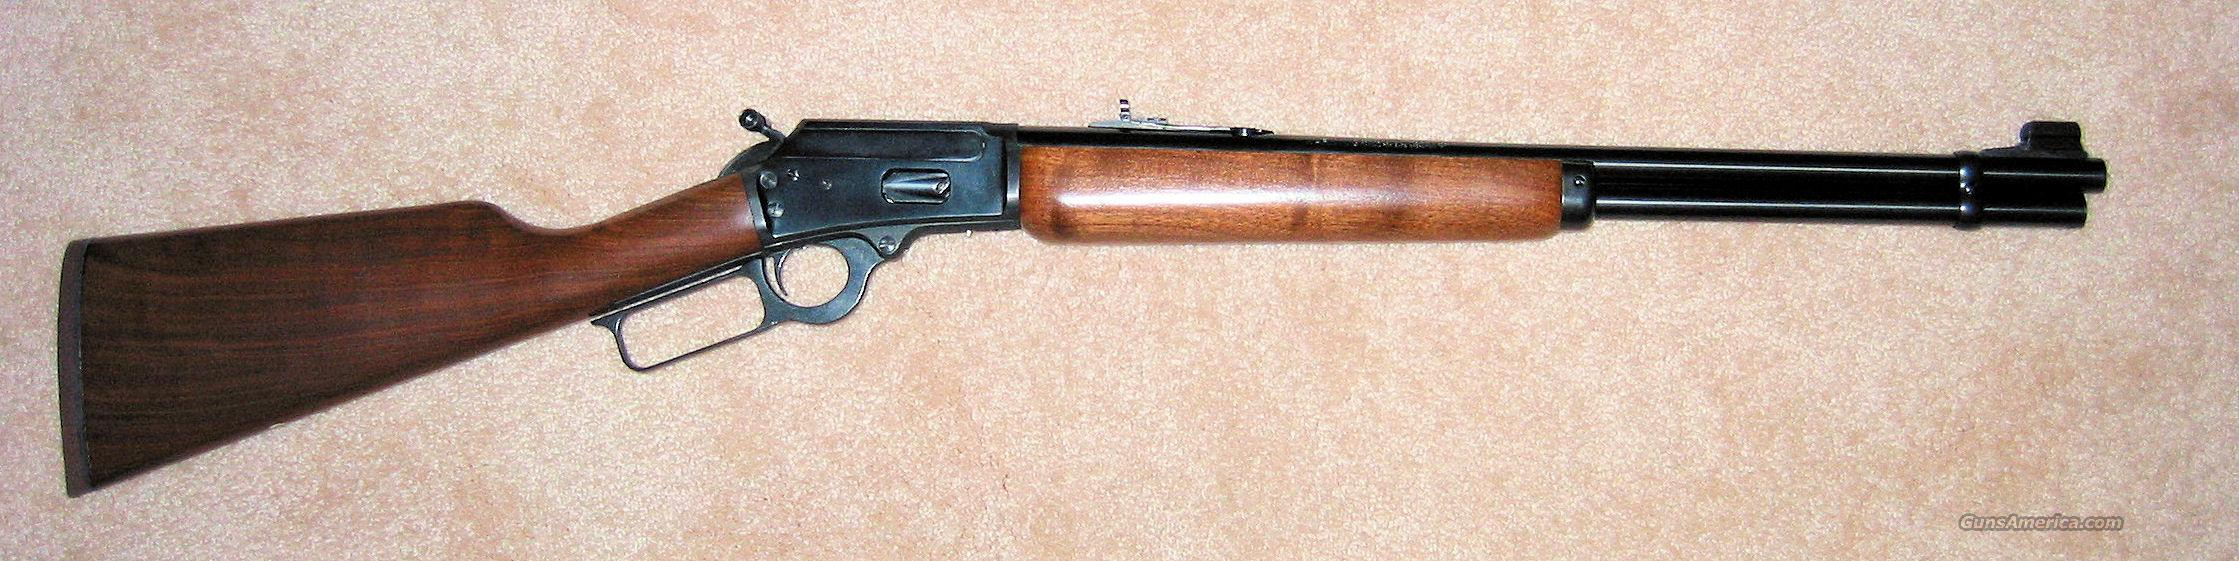 Marlin 41 Magnum Lever Action  Guns > Rifles > Marlin Rifles > Modern > Lever Action